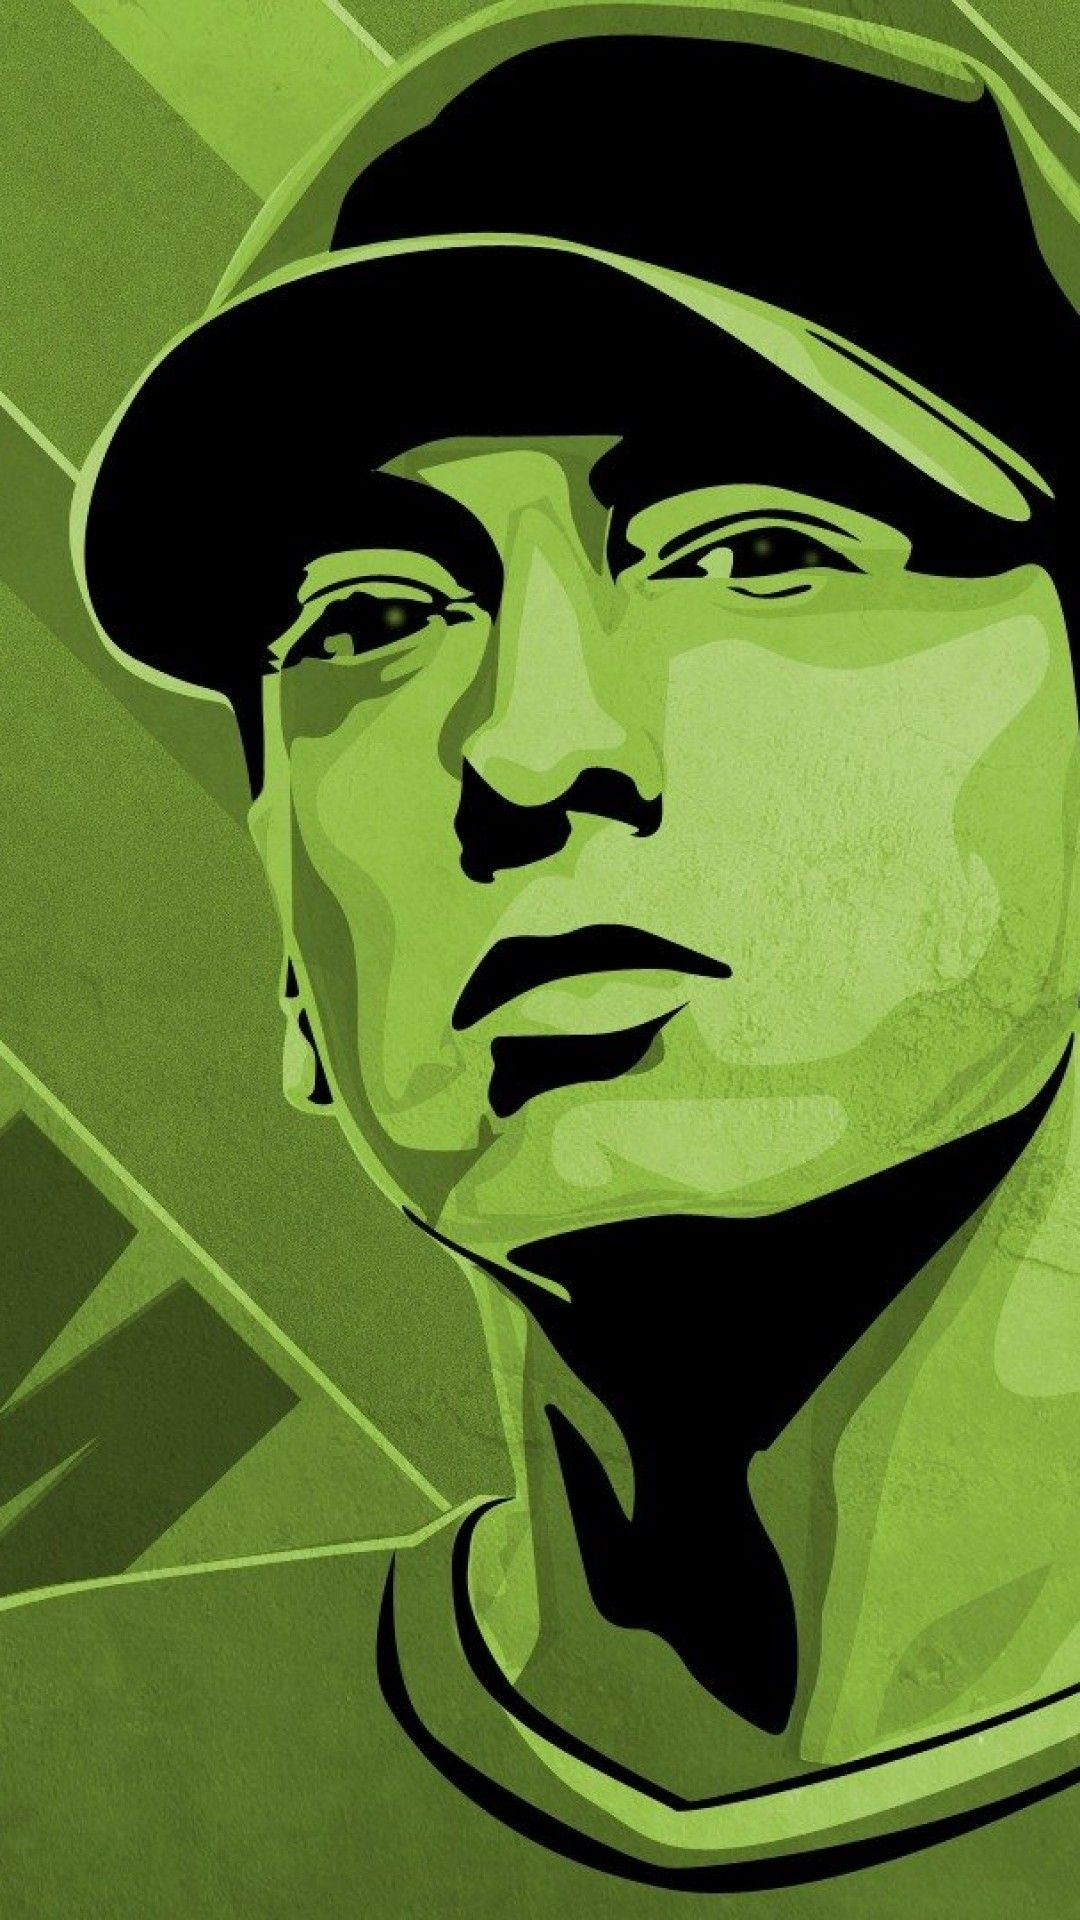 Eminem Illustration Cap Green 4k Hd Android And Iphone Wallpaper Background And Lockscreen Check More At Https Eminem Wallpapers Eminem Iphone Wallpaper Green